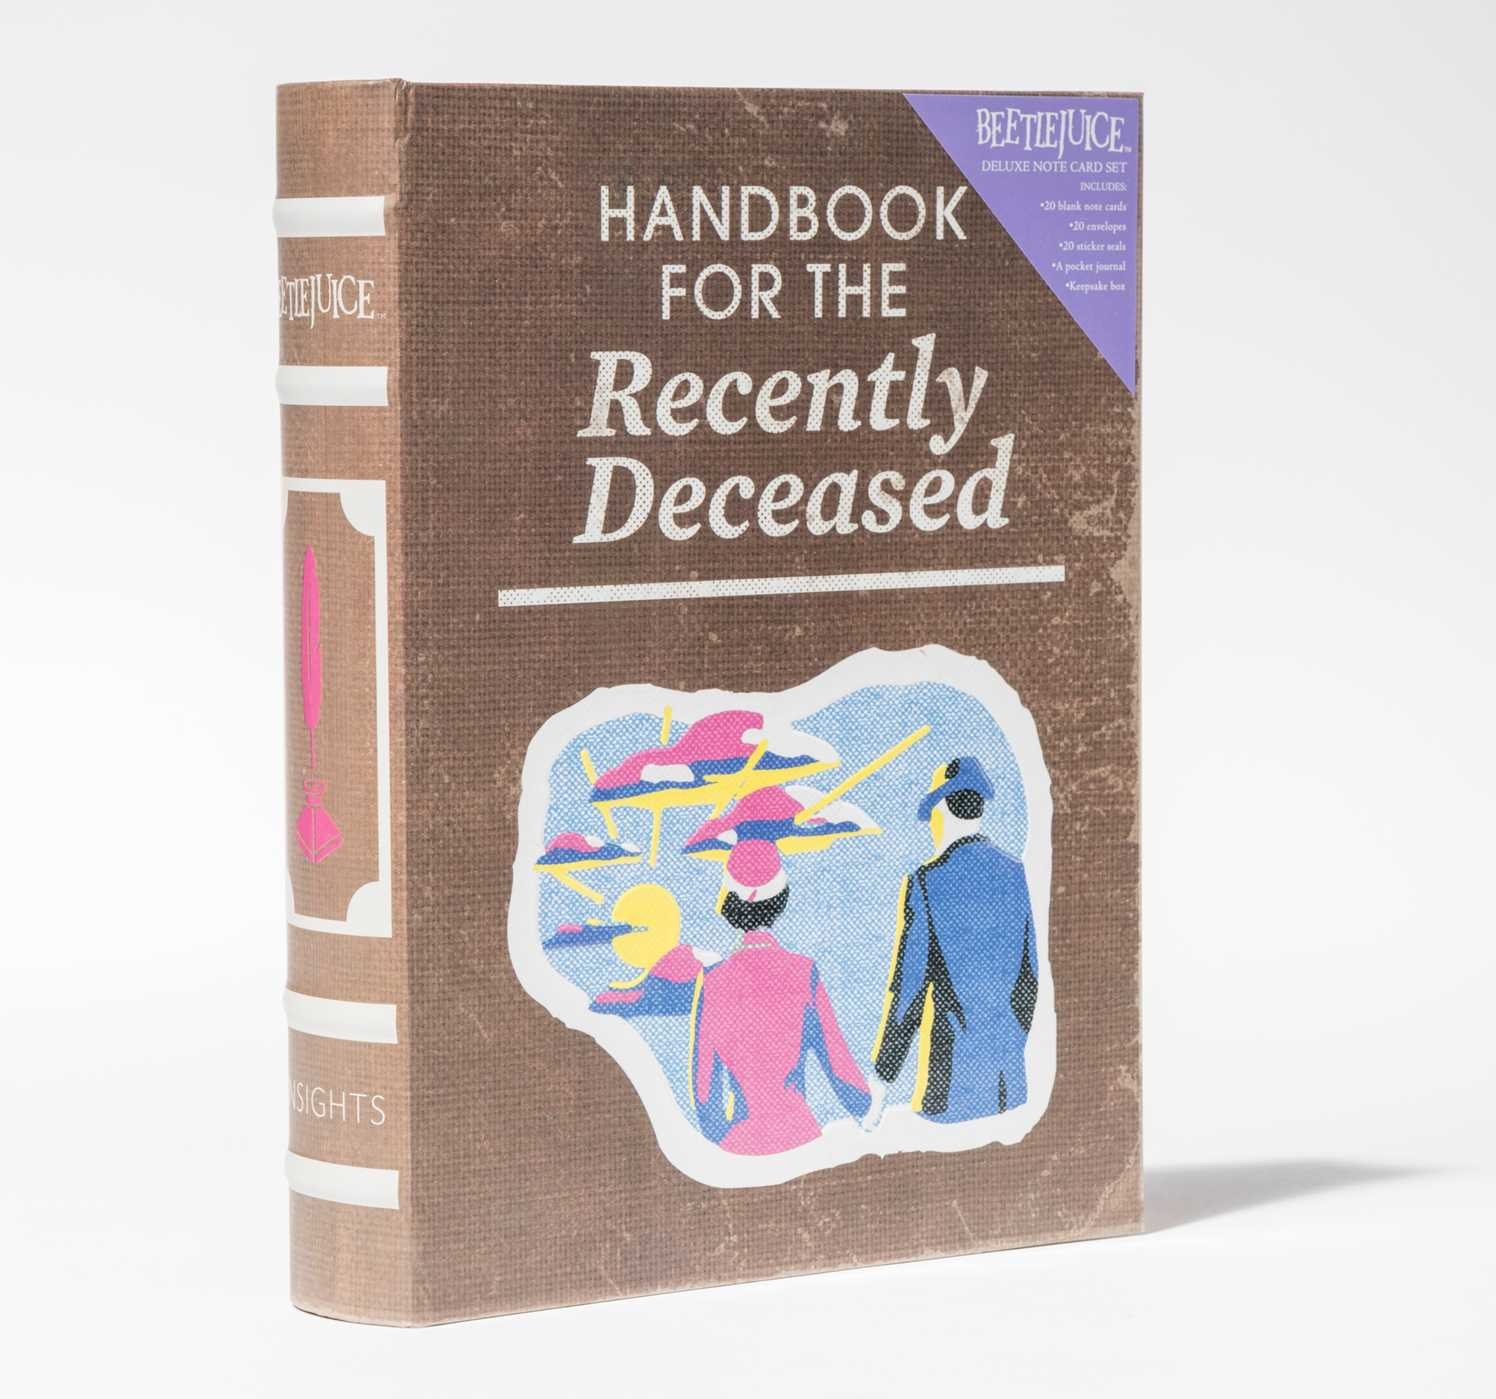 Beetlejuice handbook for the recently deceased deluxe note card set with keepsake book box 9781683833406.in11